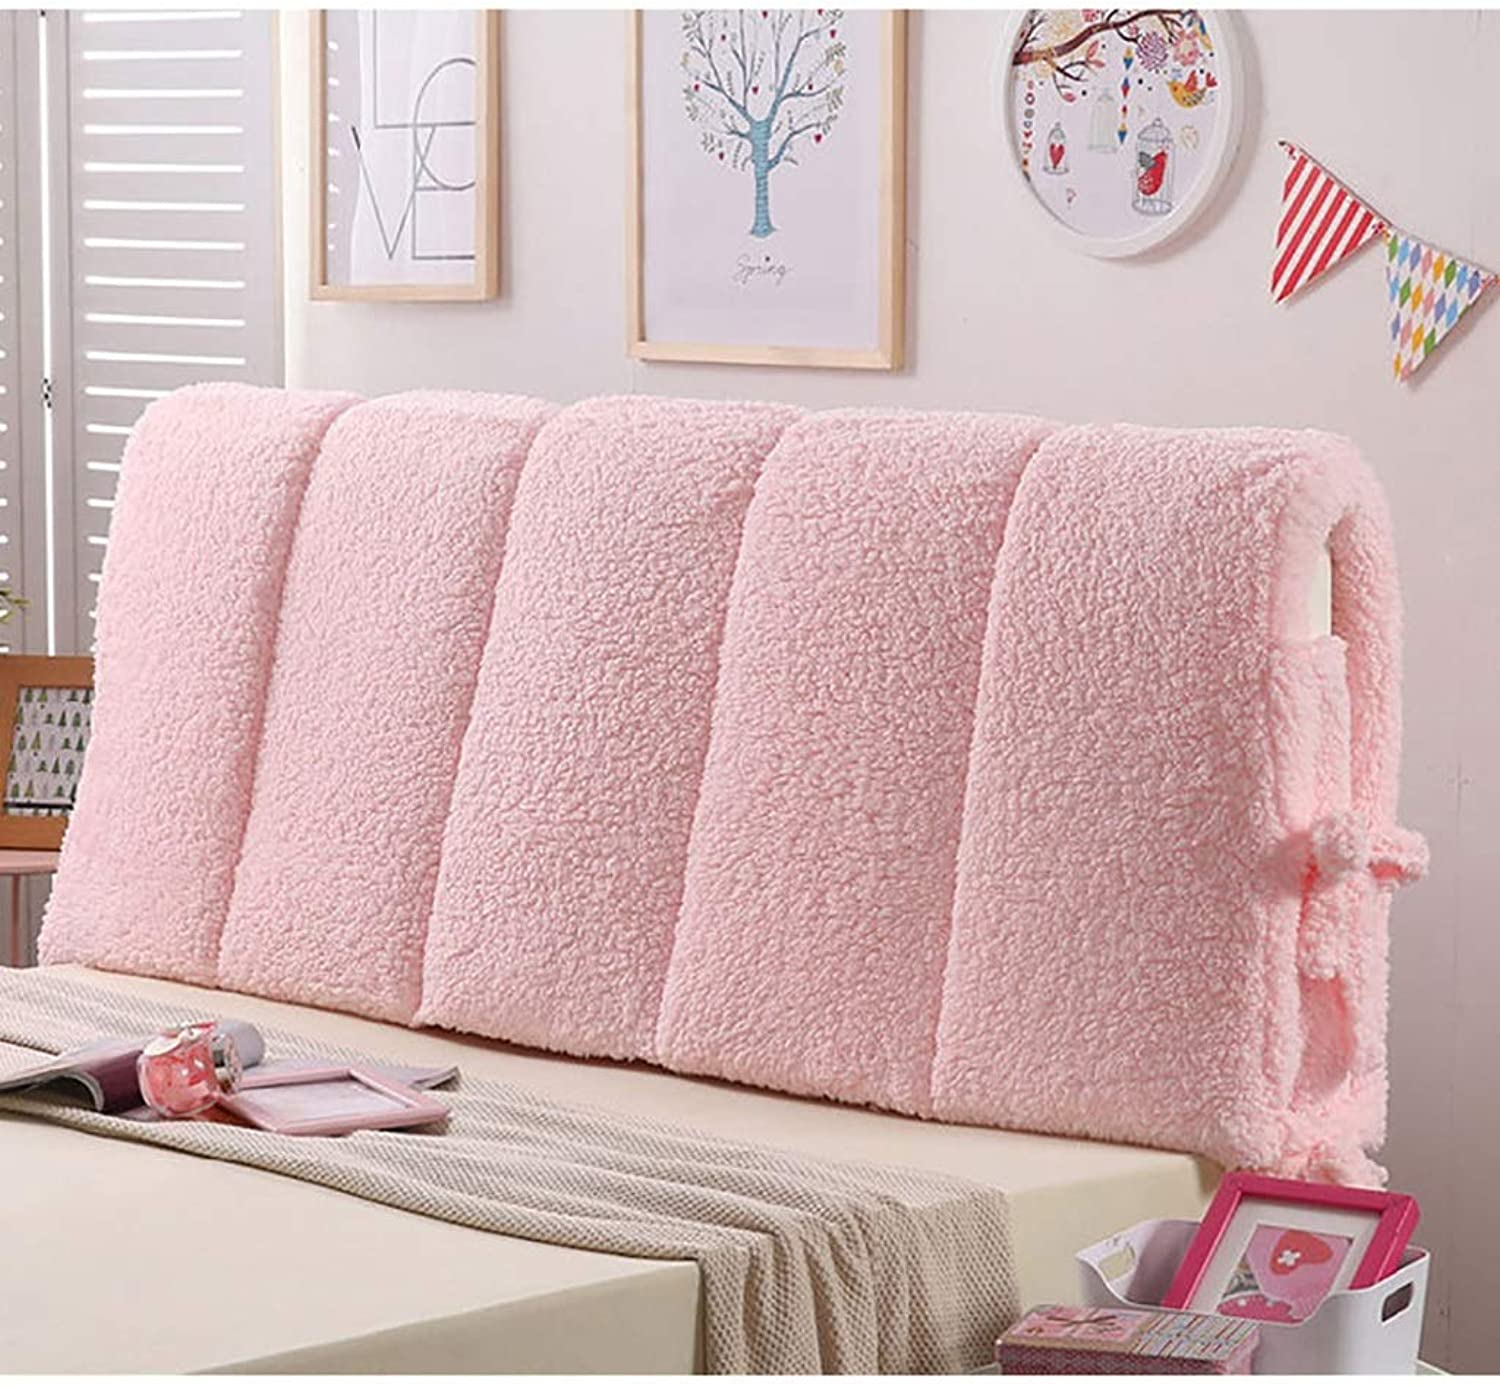 Large Soft Upholstered Headboard Cushion Wall Pillow Lumbar Pad Bed Backrest Breathable Removable Washable (color   A, Size   210cm)